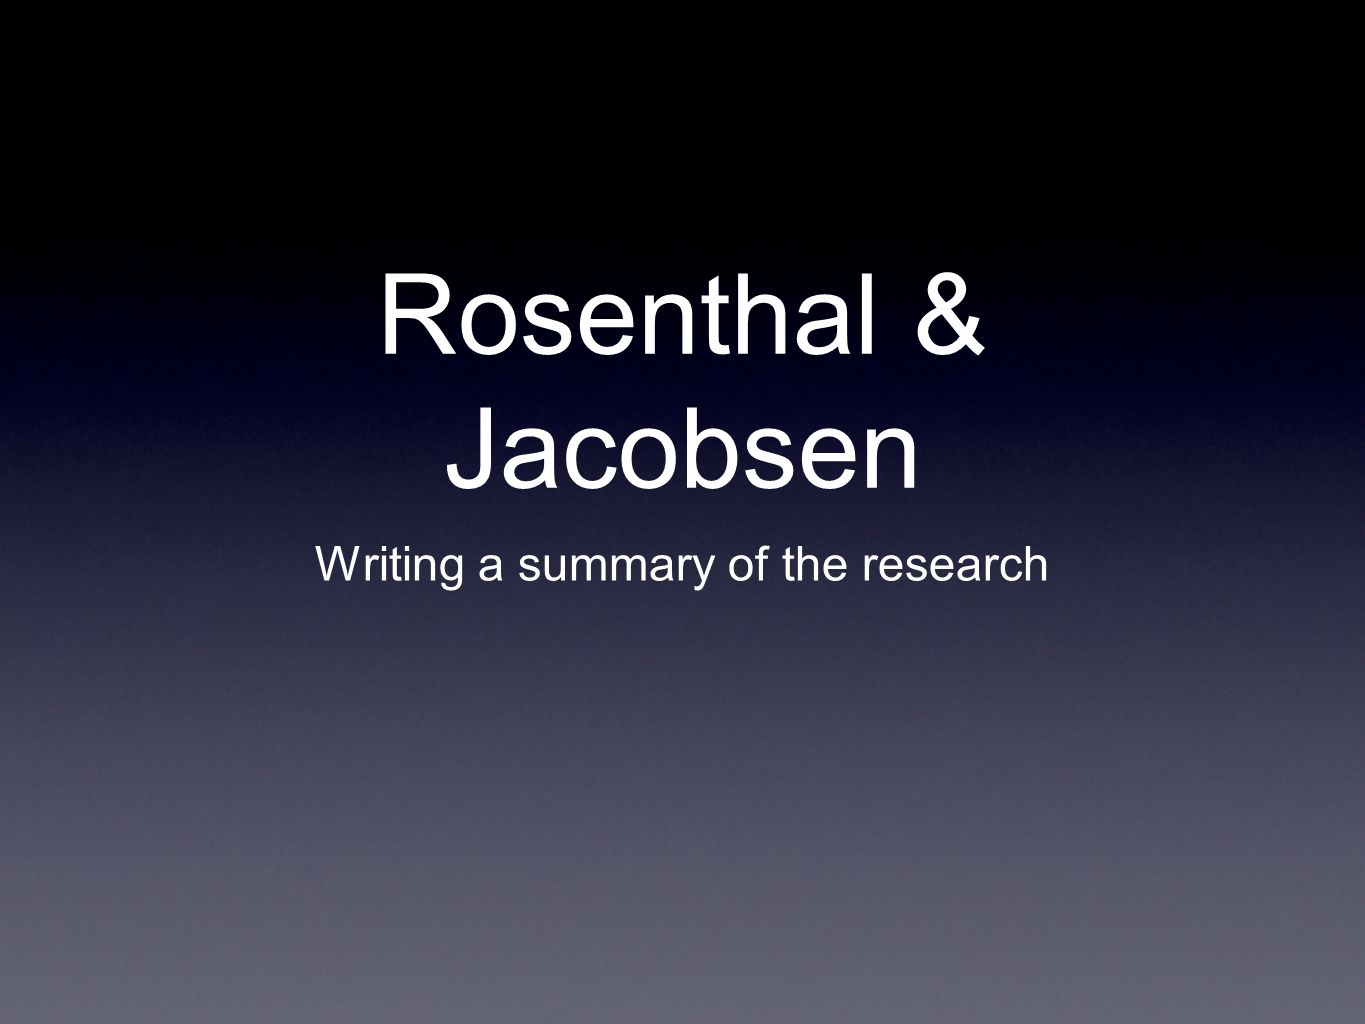 Rosenthal & Jacobsen Writing a summary of the research